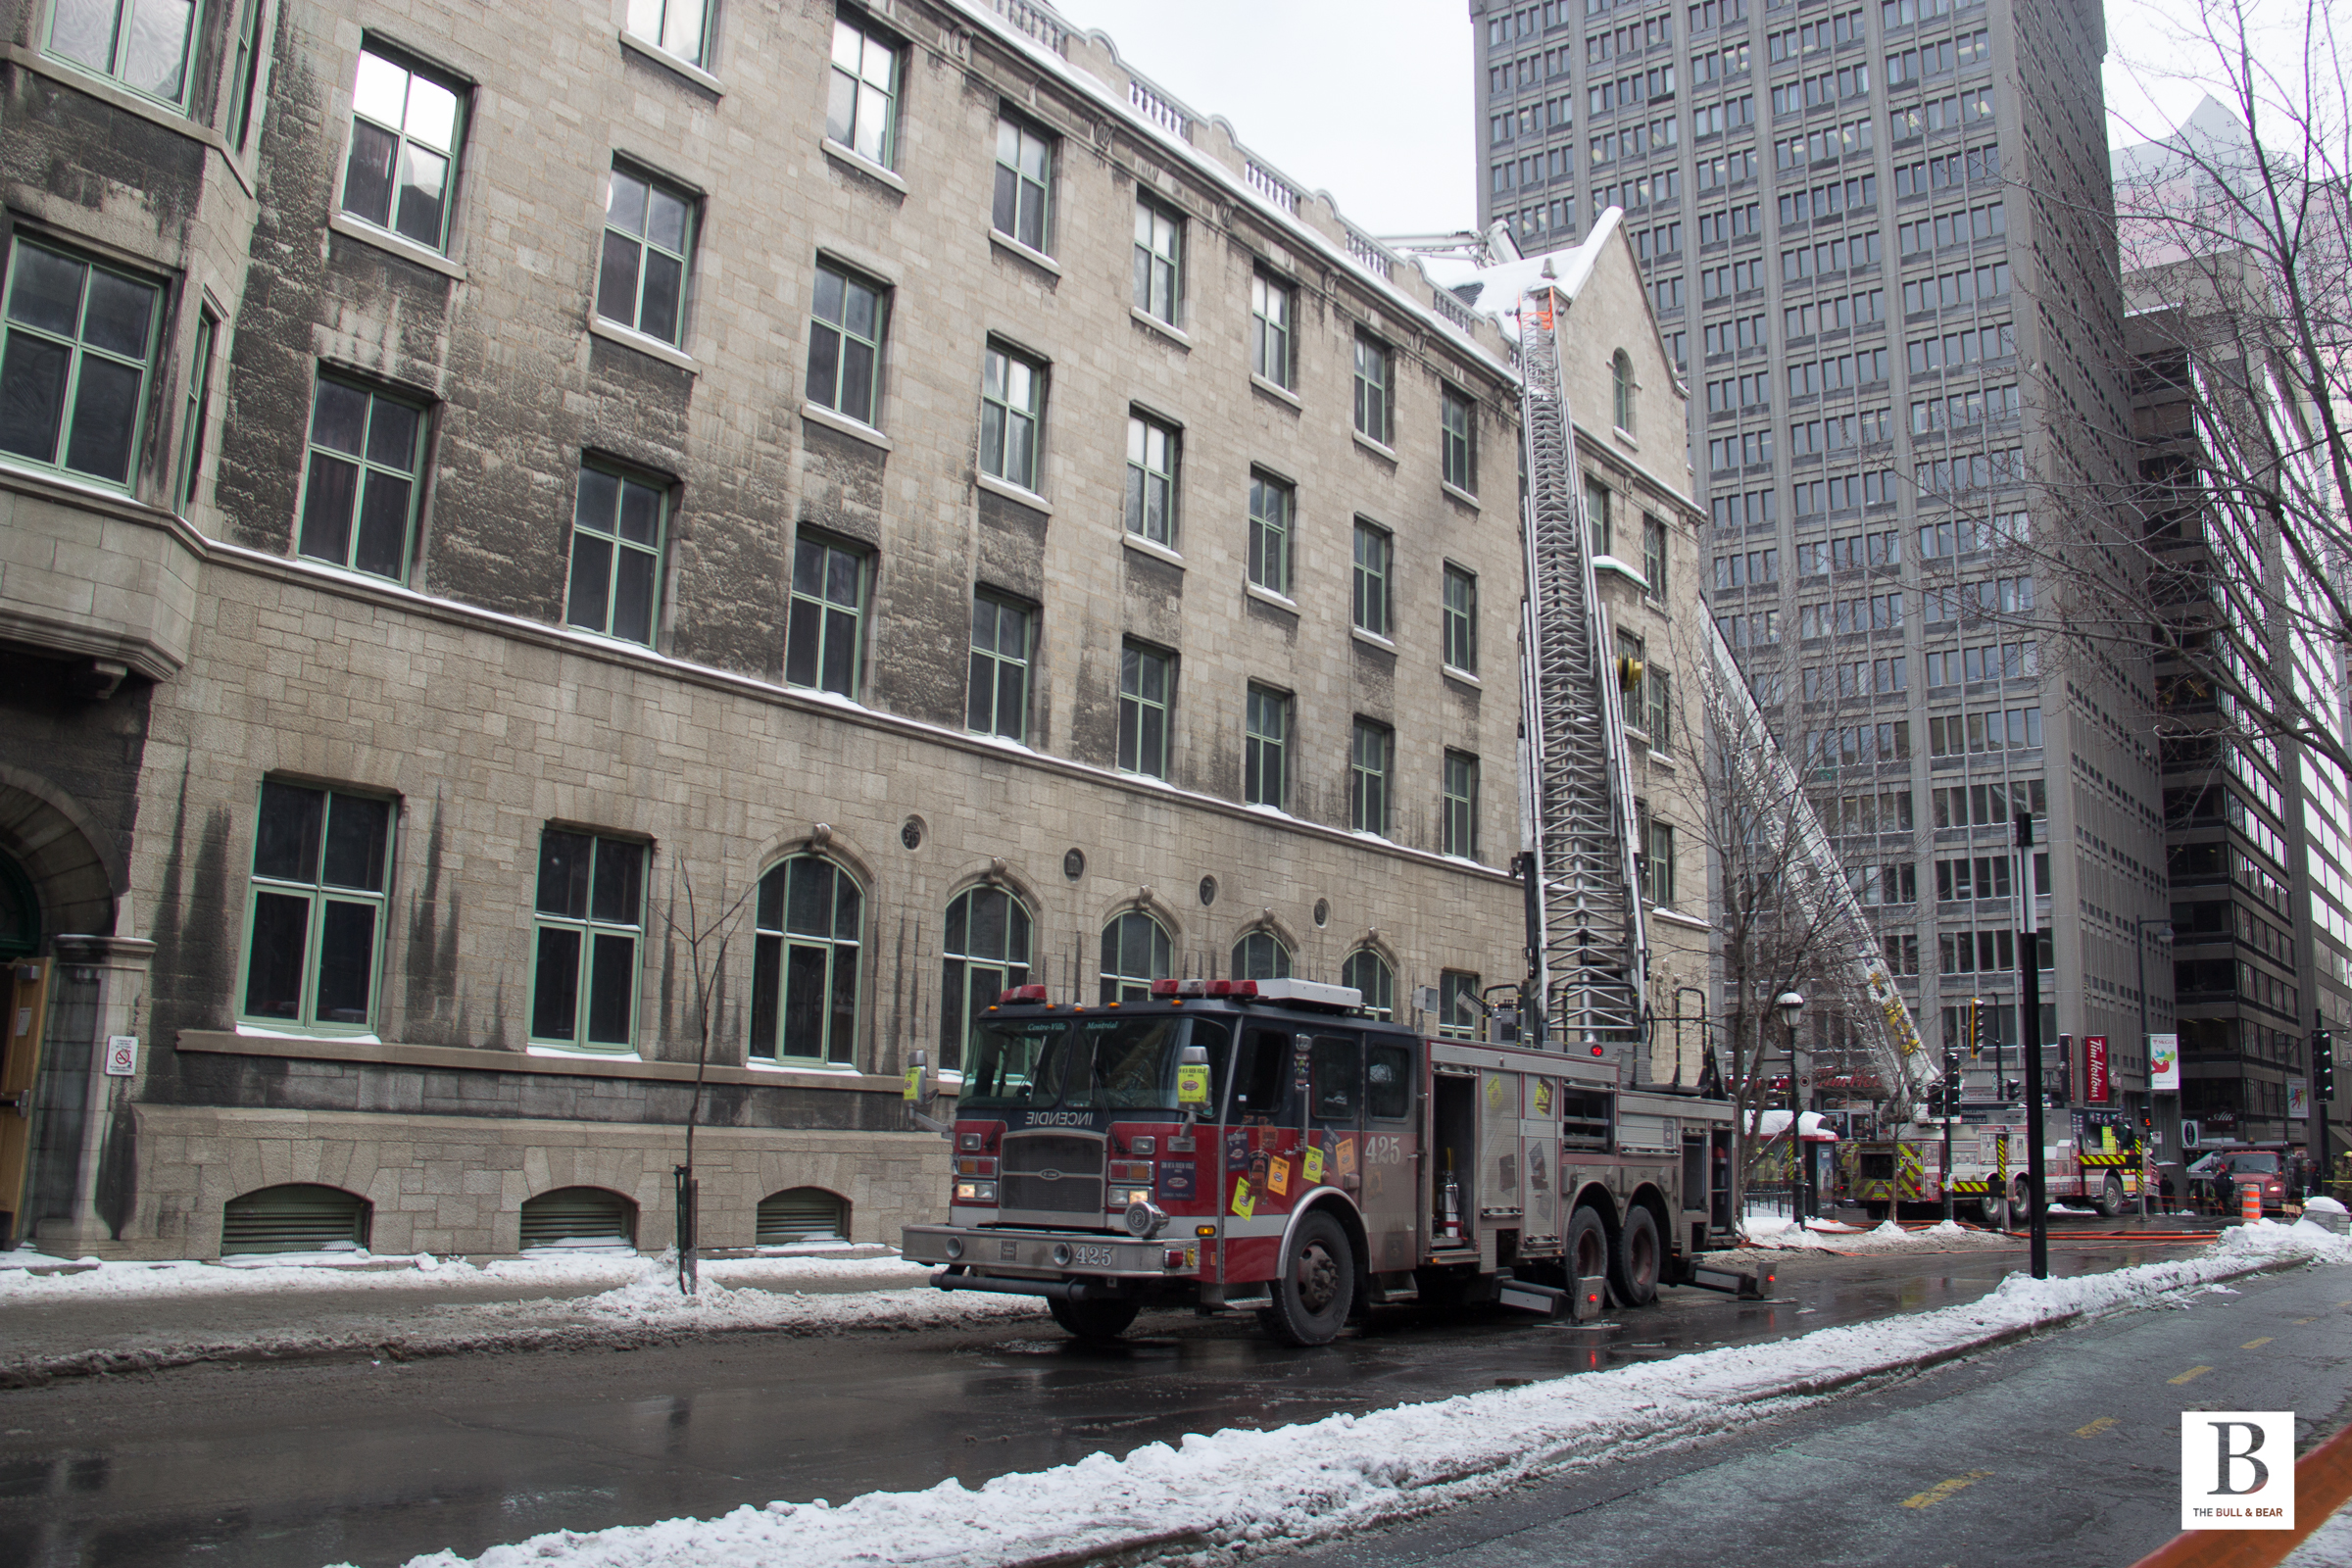 A firetruck extends a ladder to firefighters on the roof of RVC.